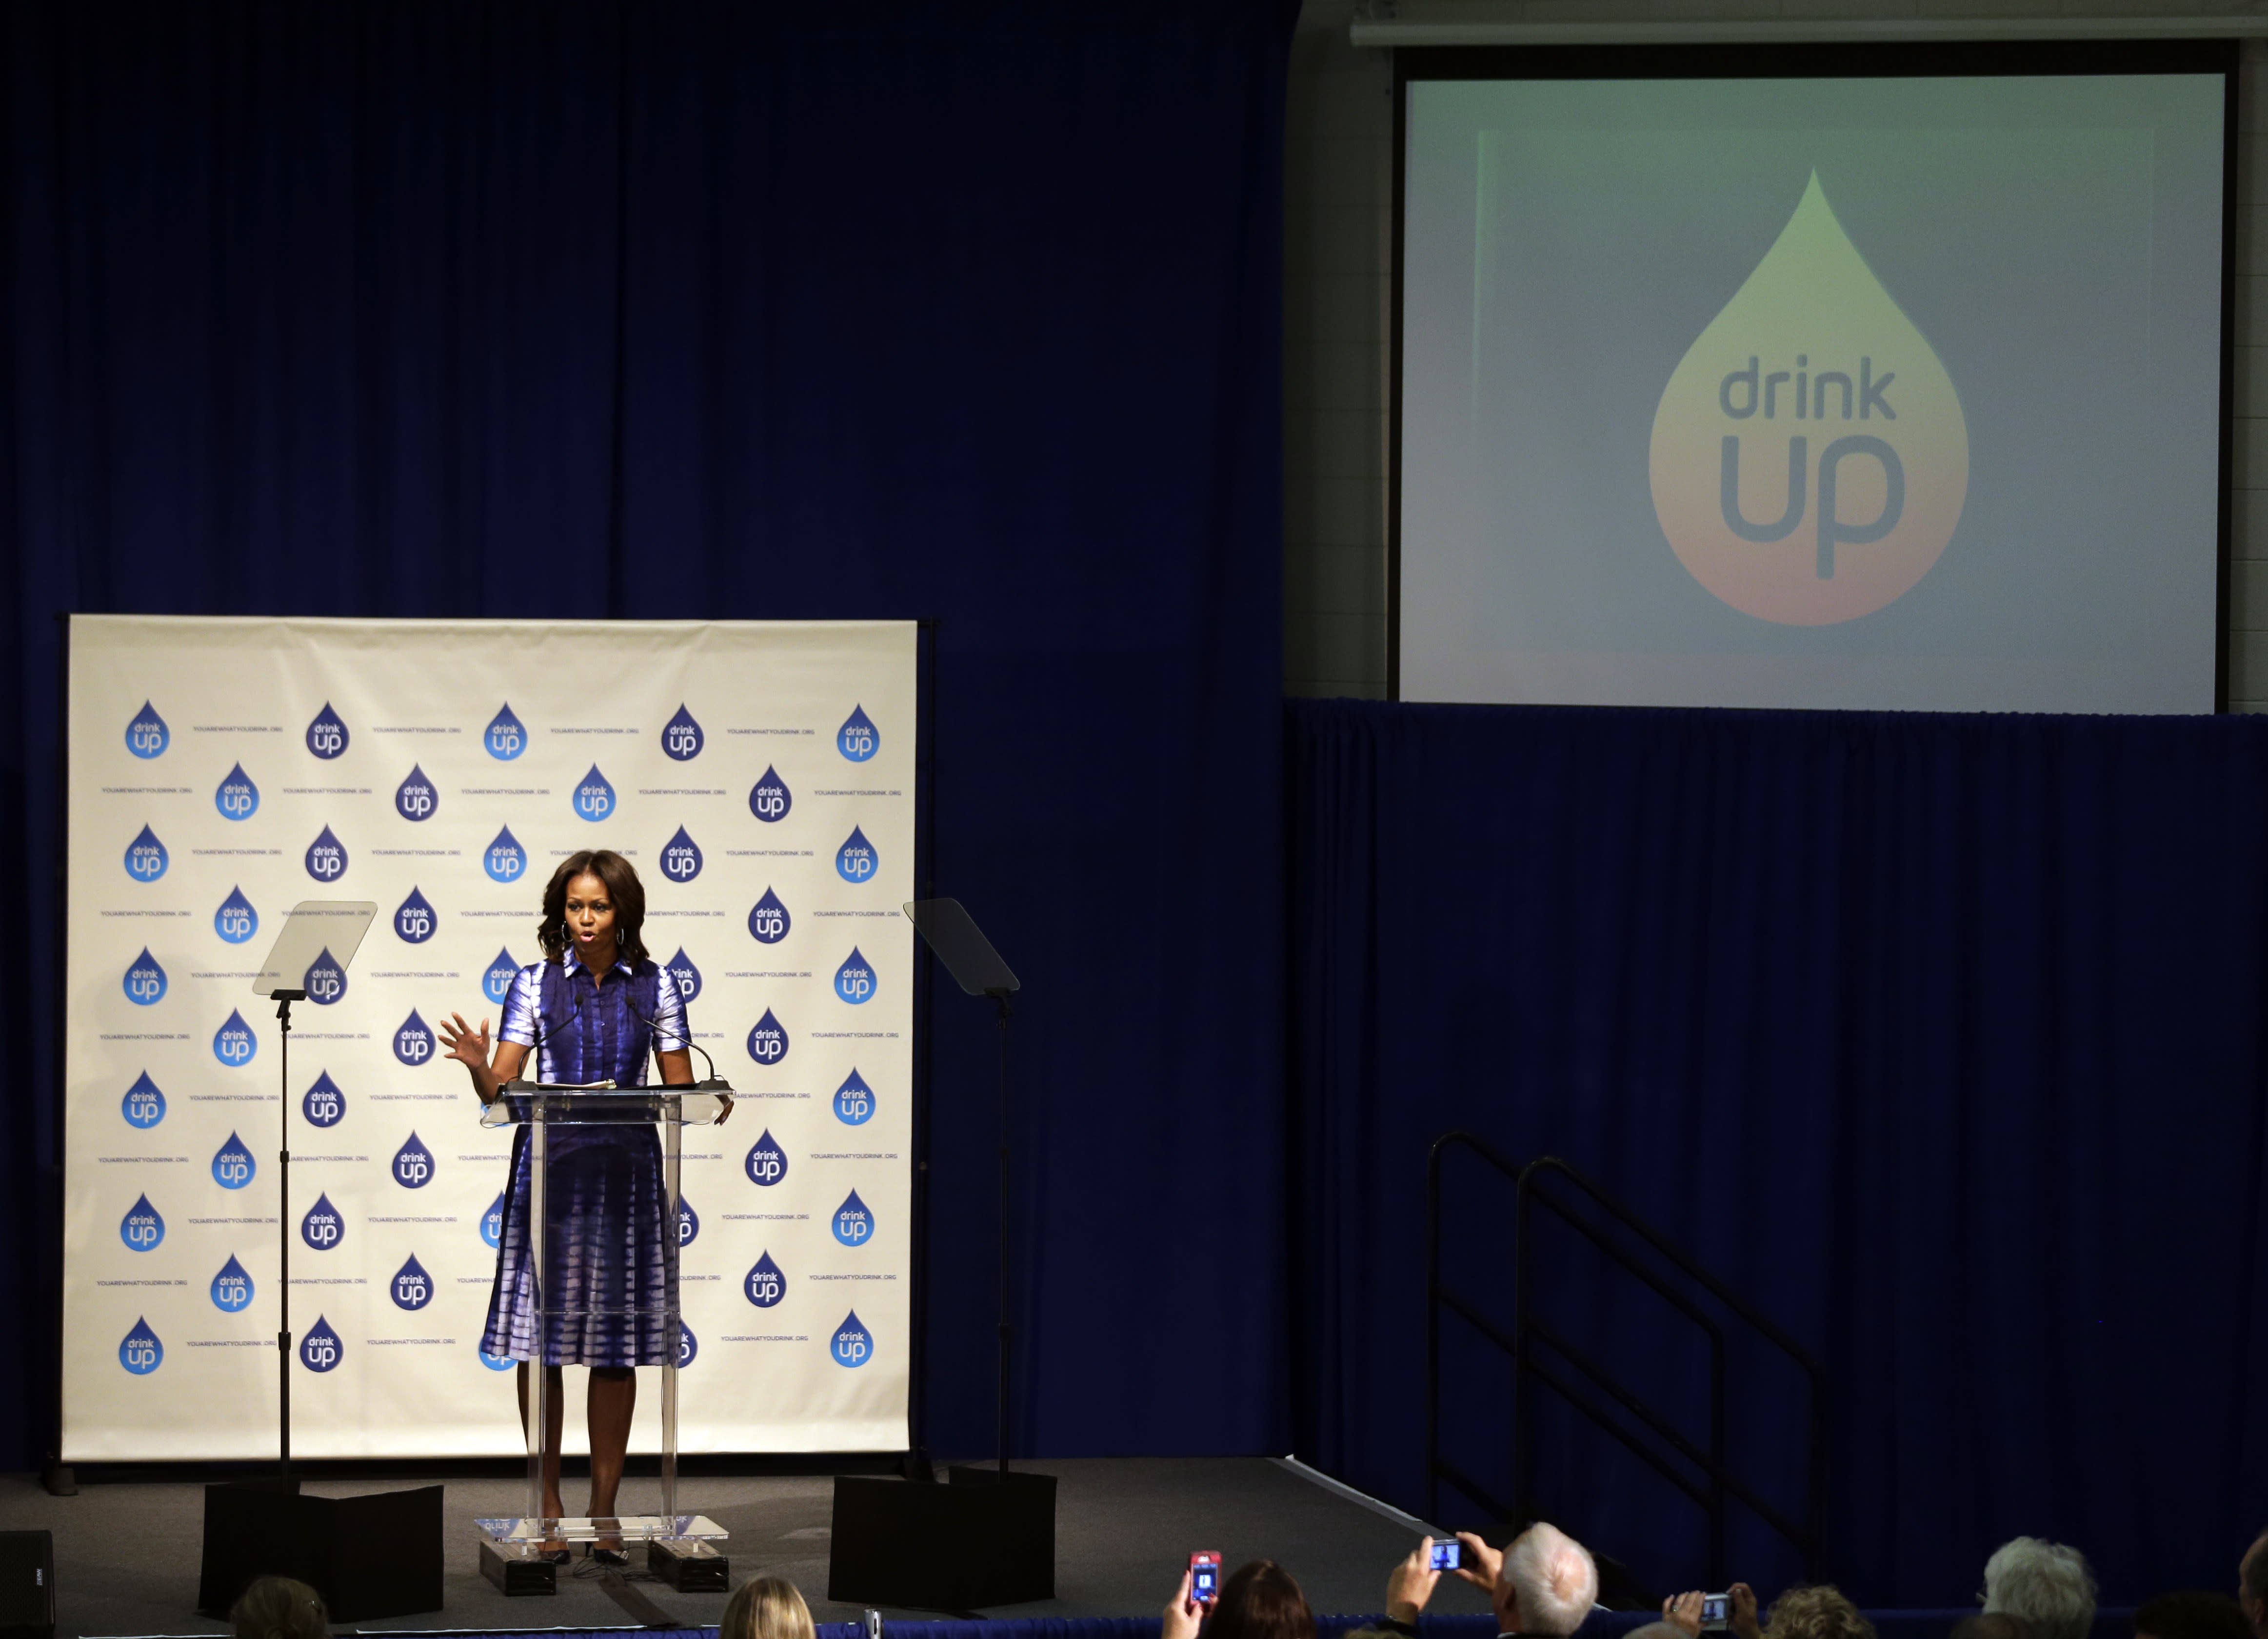 First lady Michelle Obama speaks during an event at Watertown High School to encourage people to drink more water, Thursday, Sept. 12, 2013, in Watertown, Wis. (AP Photo/Morry Gash)